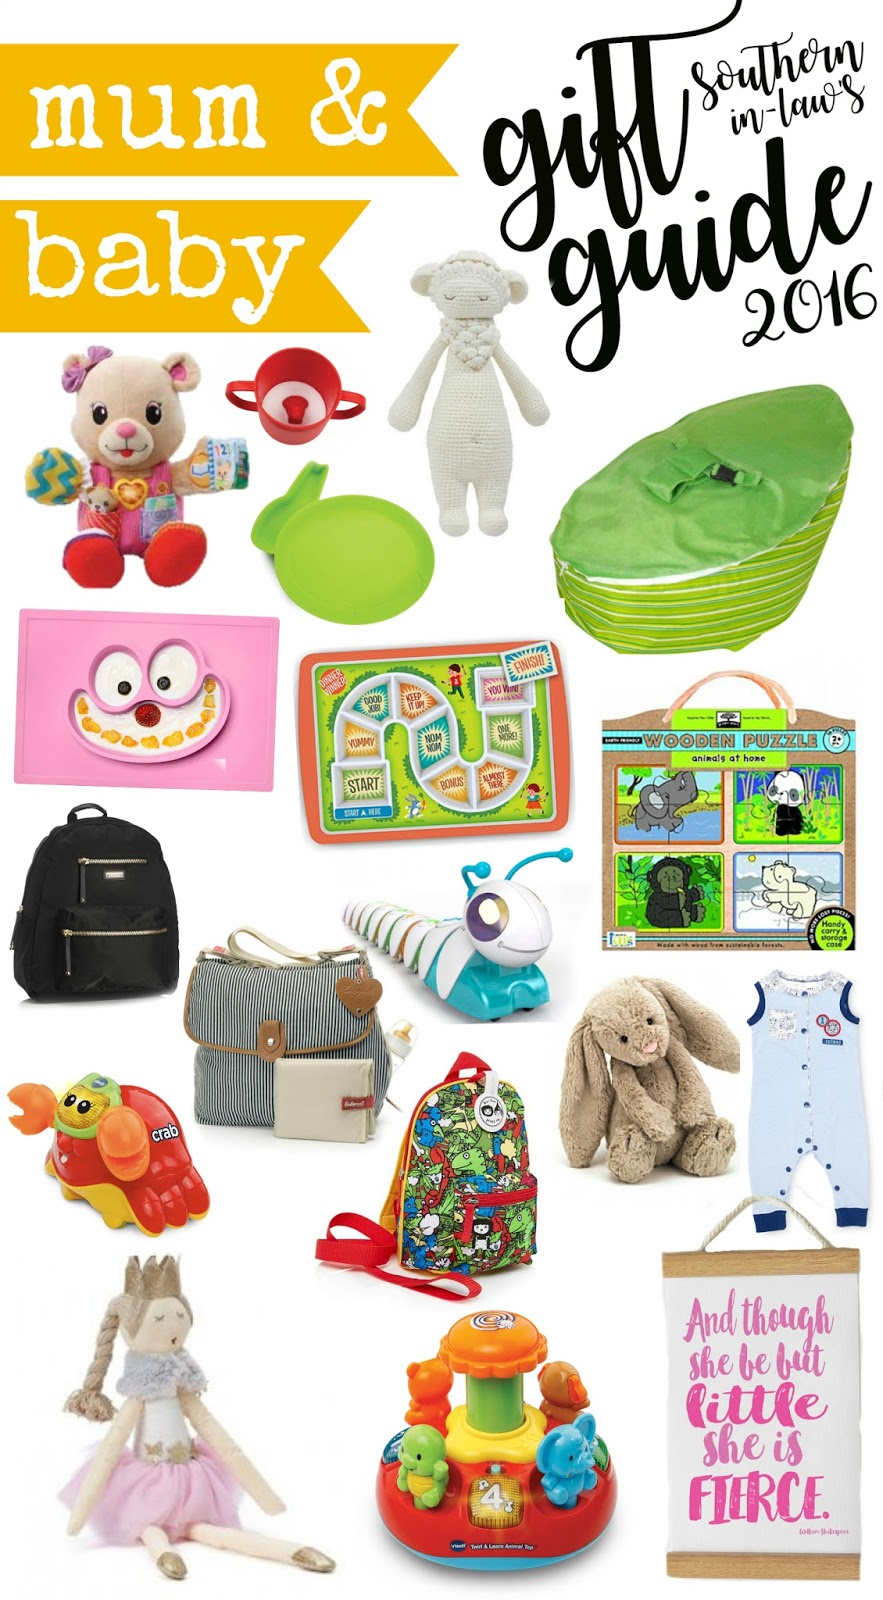 Mum and Baby Christmas Gift Guide 2016 - Christmas Gift Ideas for Babies, Toddlers, Newborns and Parents